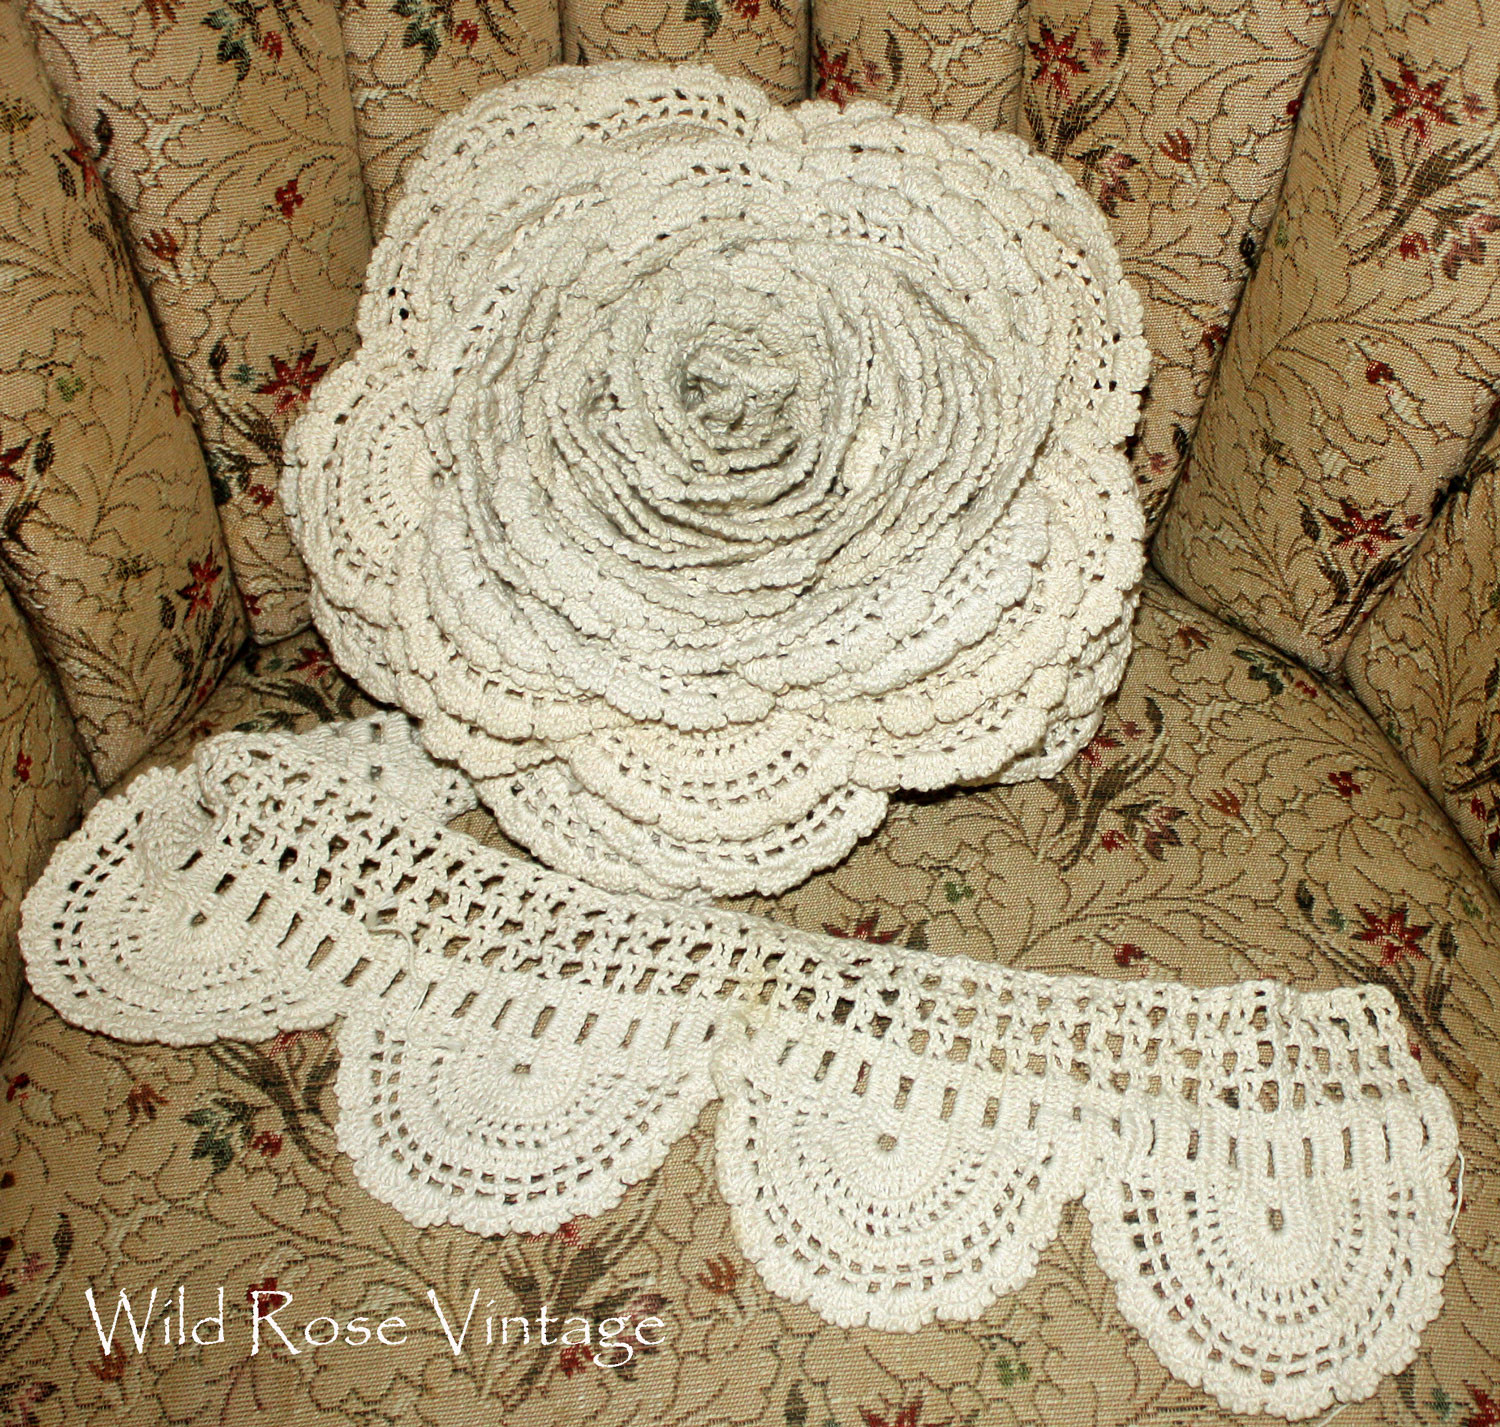 Lovely Wild Rose Vintage Giant Crochet Lace Rose and Other Treasures Crochet Lace Of Amazing 43 Photos Crochet Lace